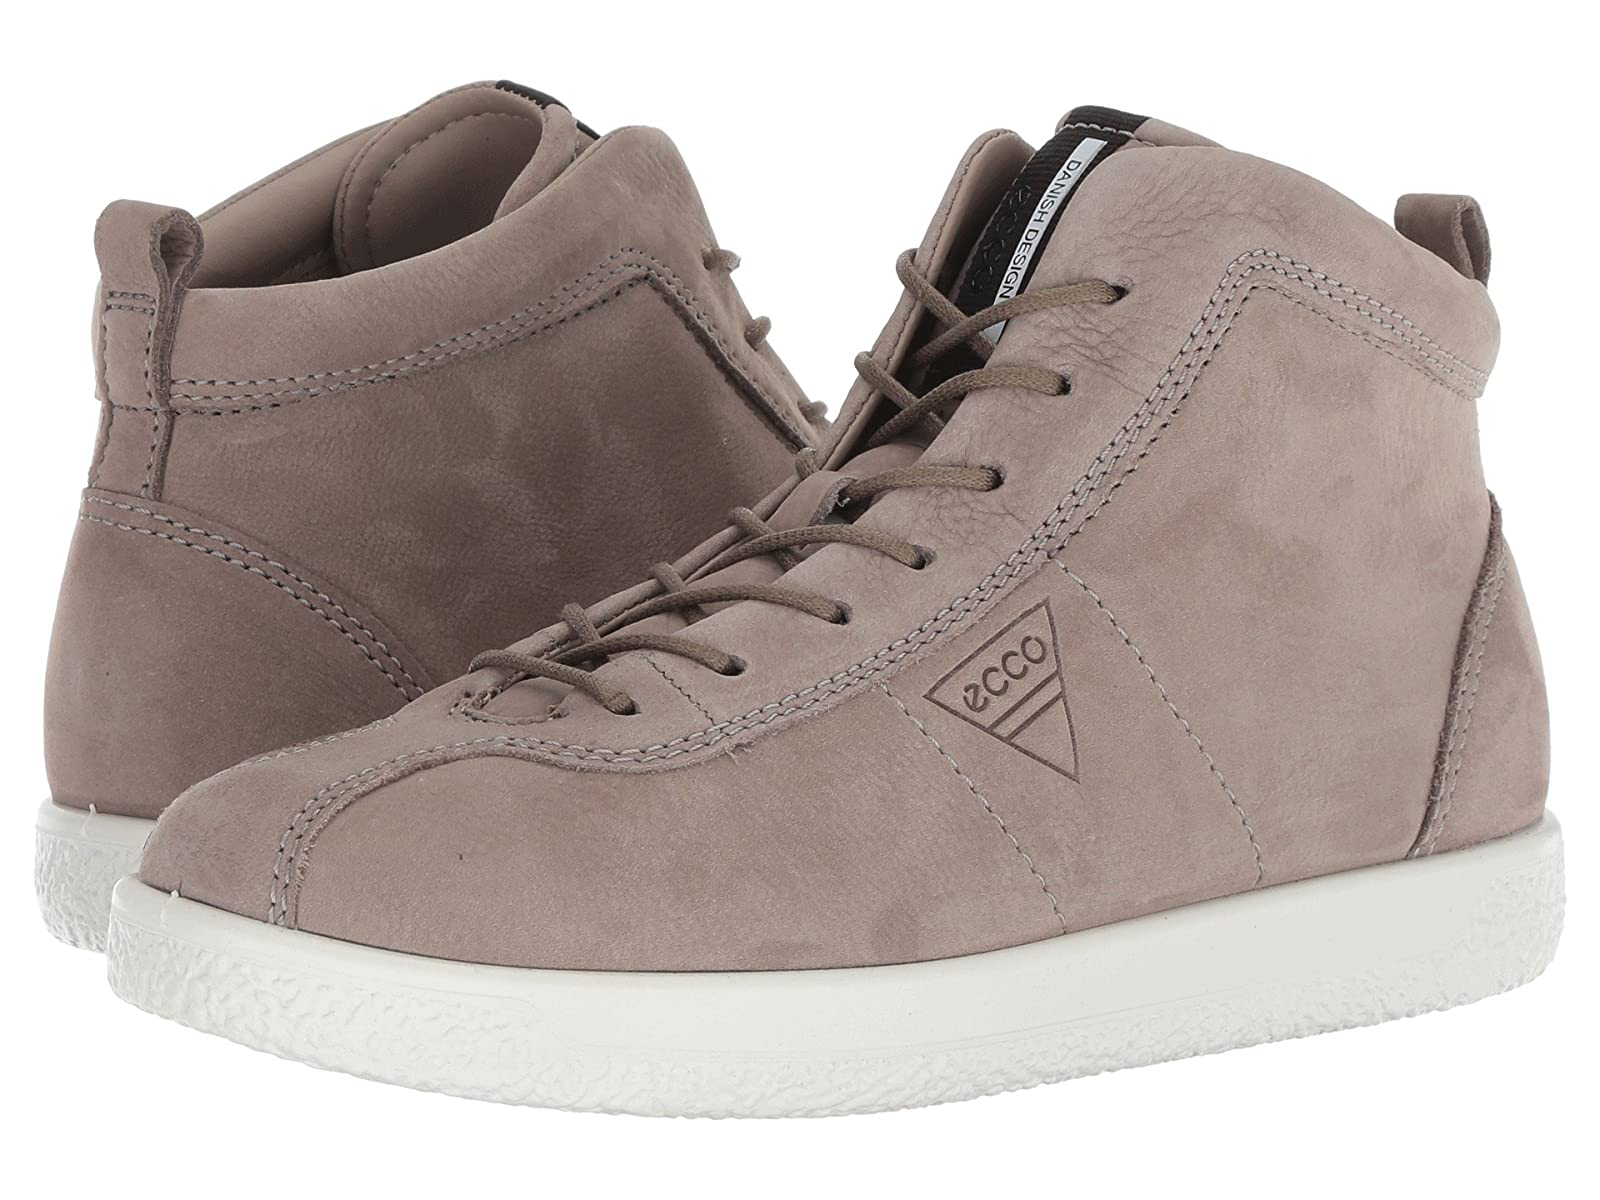 ECCO Soft 1 High TopCheap and distinctive eye-catching shoes